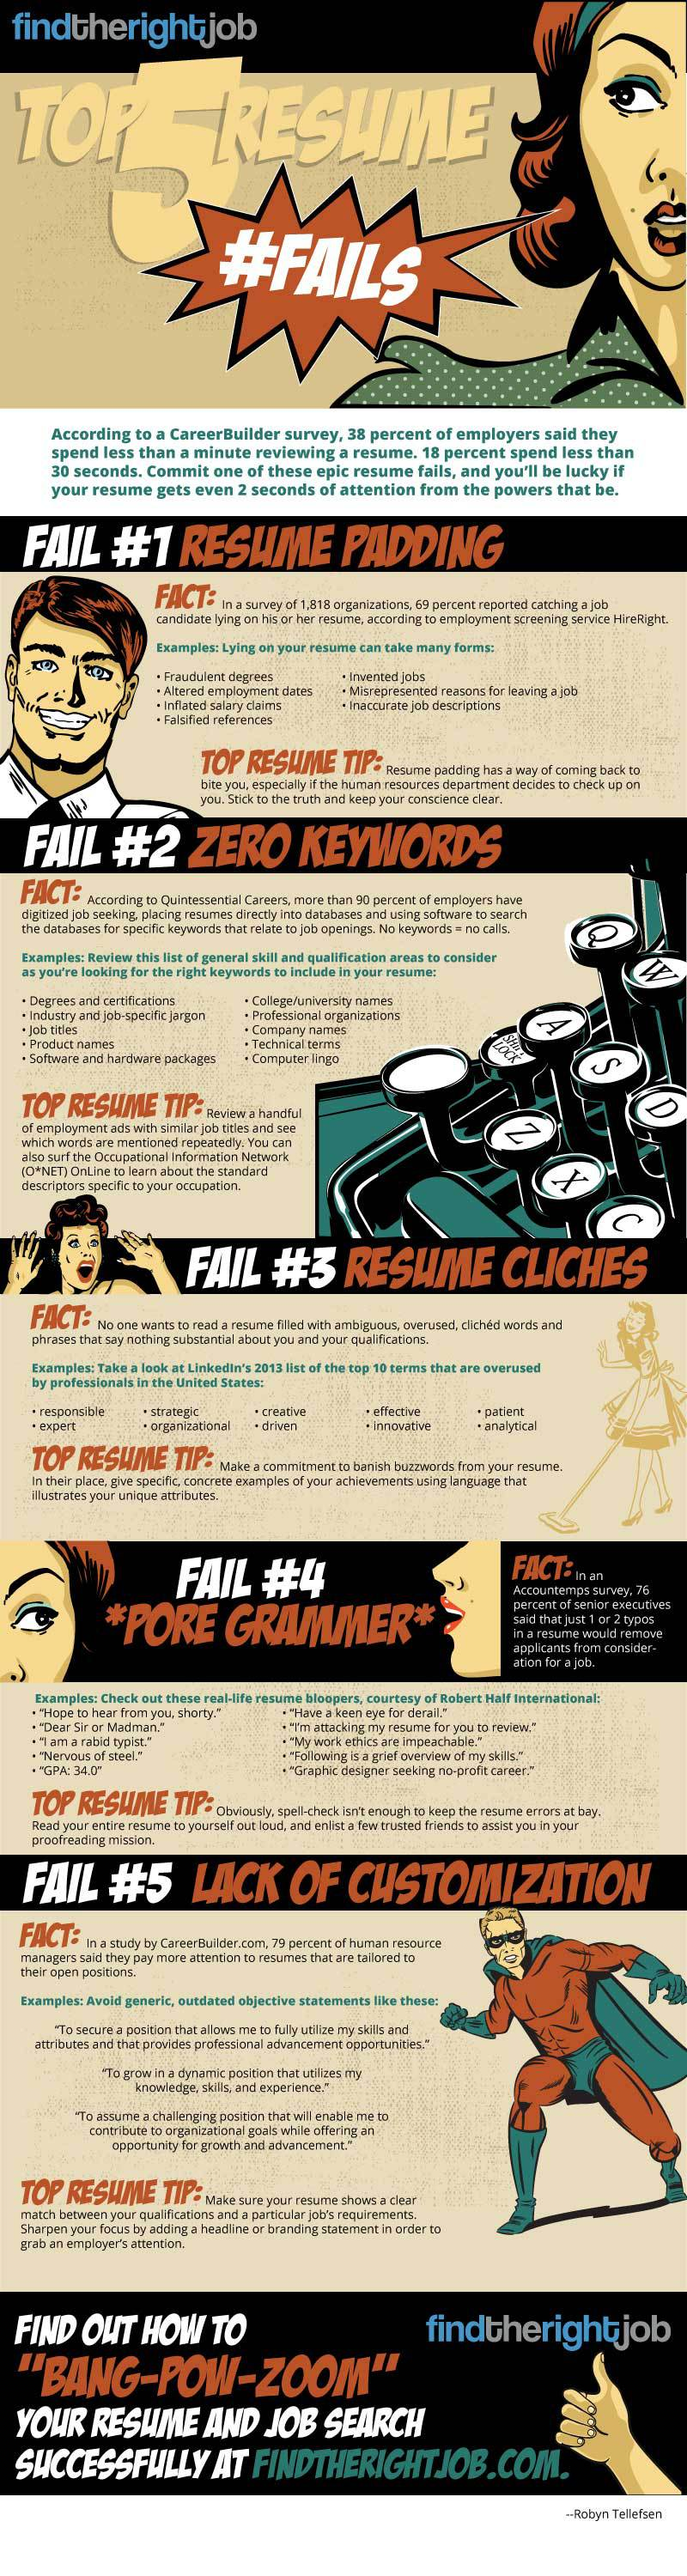 Best Resume Writing Software Delectable Pinjessica Campbell On Jobbie Job  Pinterest  Resume Writing .